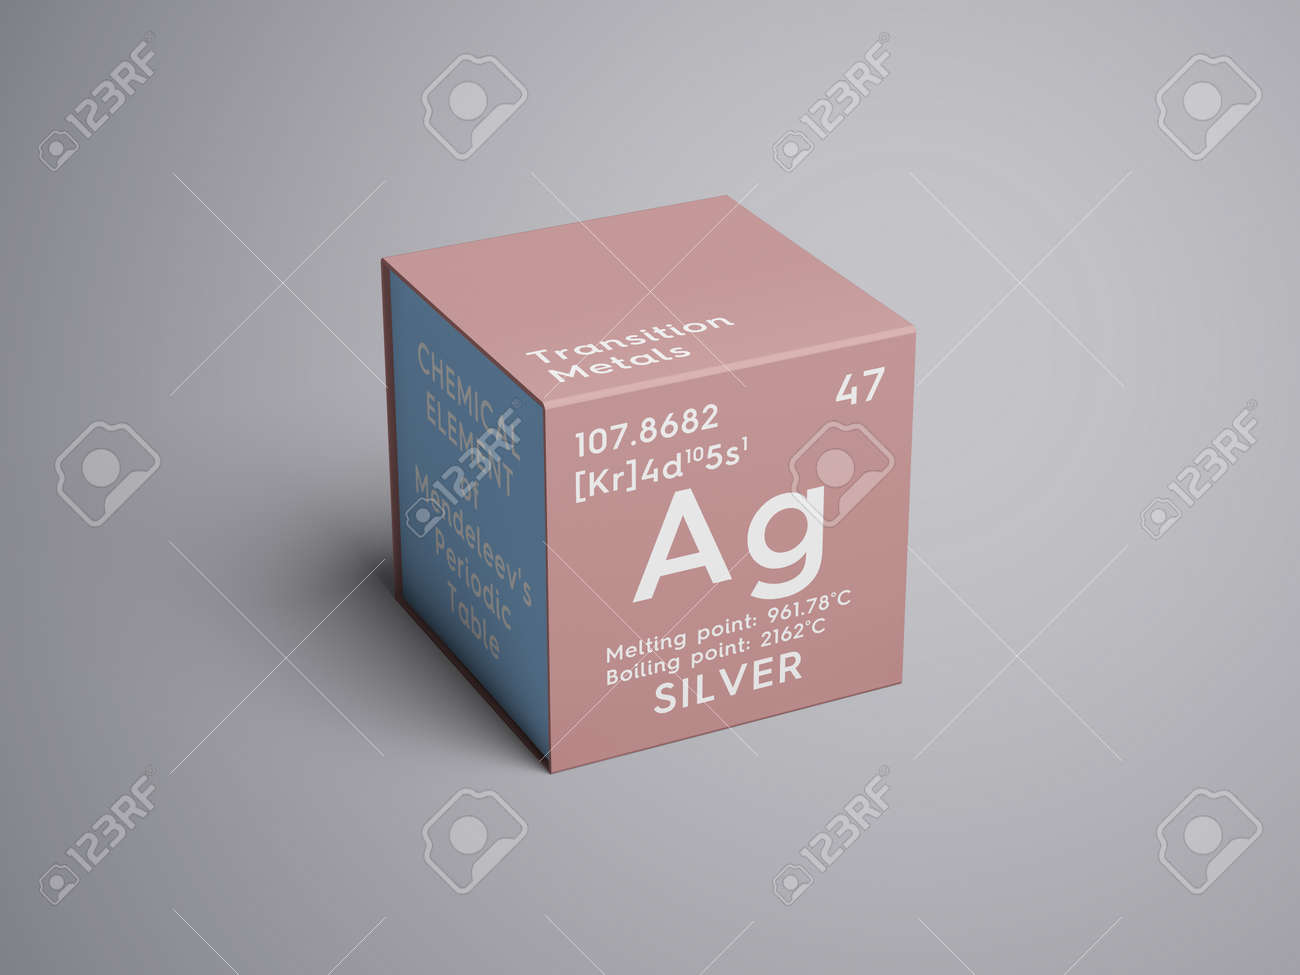 Silver in periodic table choice image periodic table images silver transition metals chemical element of mendeleevs silver transition metals chemical element of mendeleevs periodic table gamestrikefo Choice Image